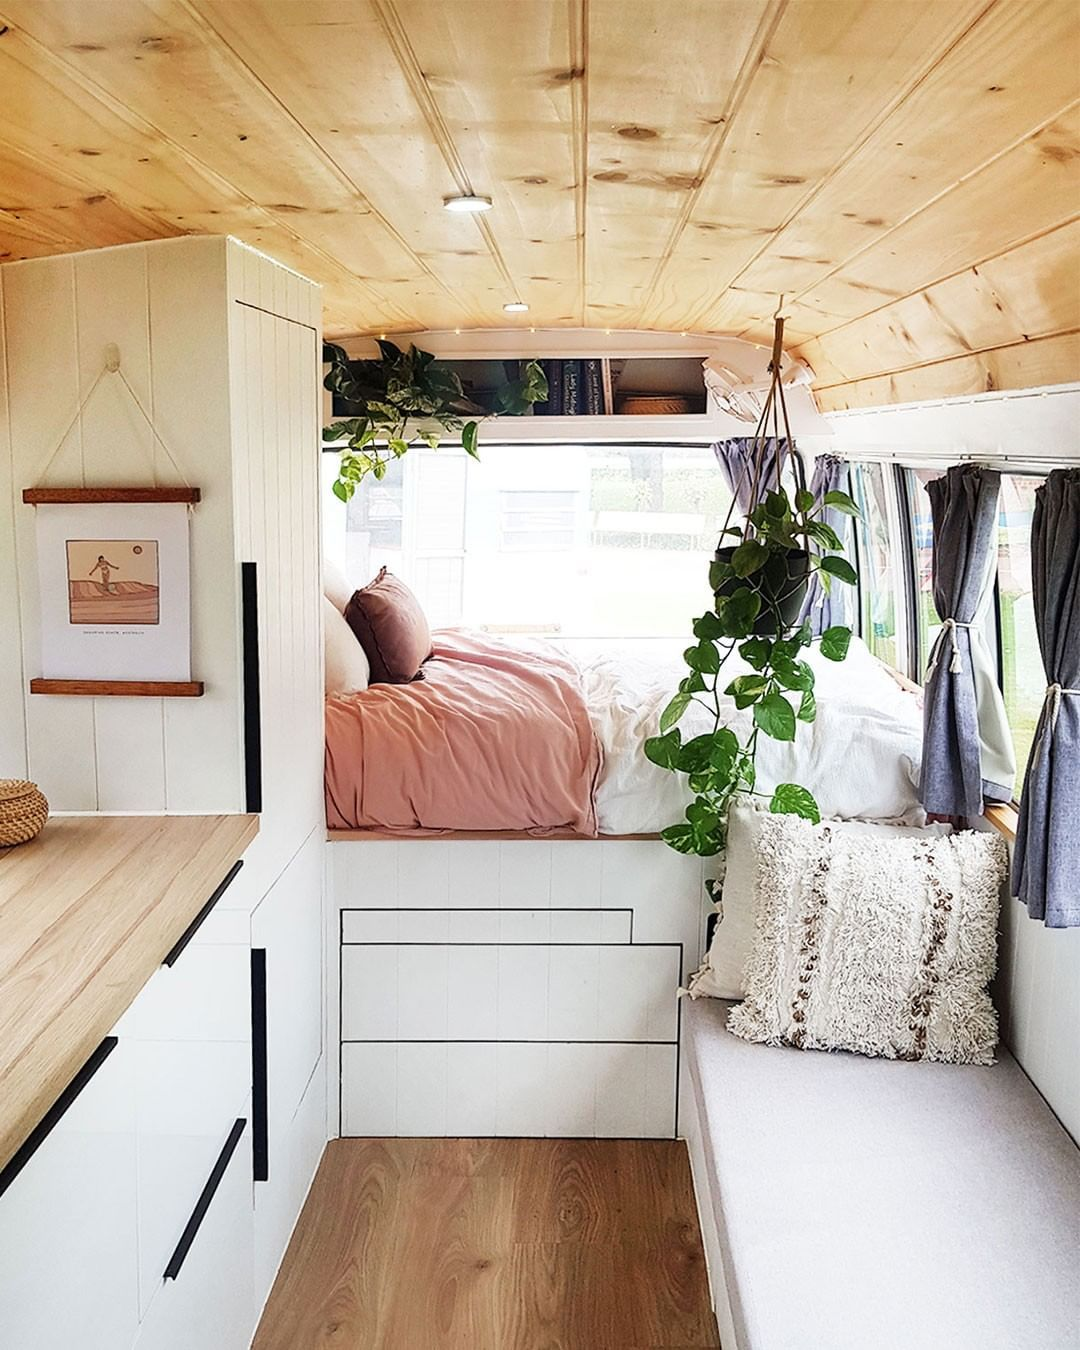 "The Design Files on Instagram: ""TINY HOMES · Meet the Australians embracing life on the road! _ LINK TO FULL STORY IN BIO ↖ Pic @civilian.life . . . #vanlife #vanlifers…"" #tinyhomes"